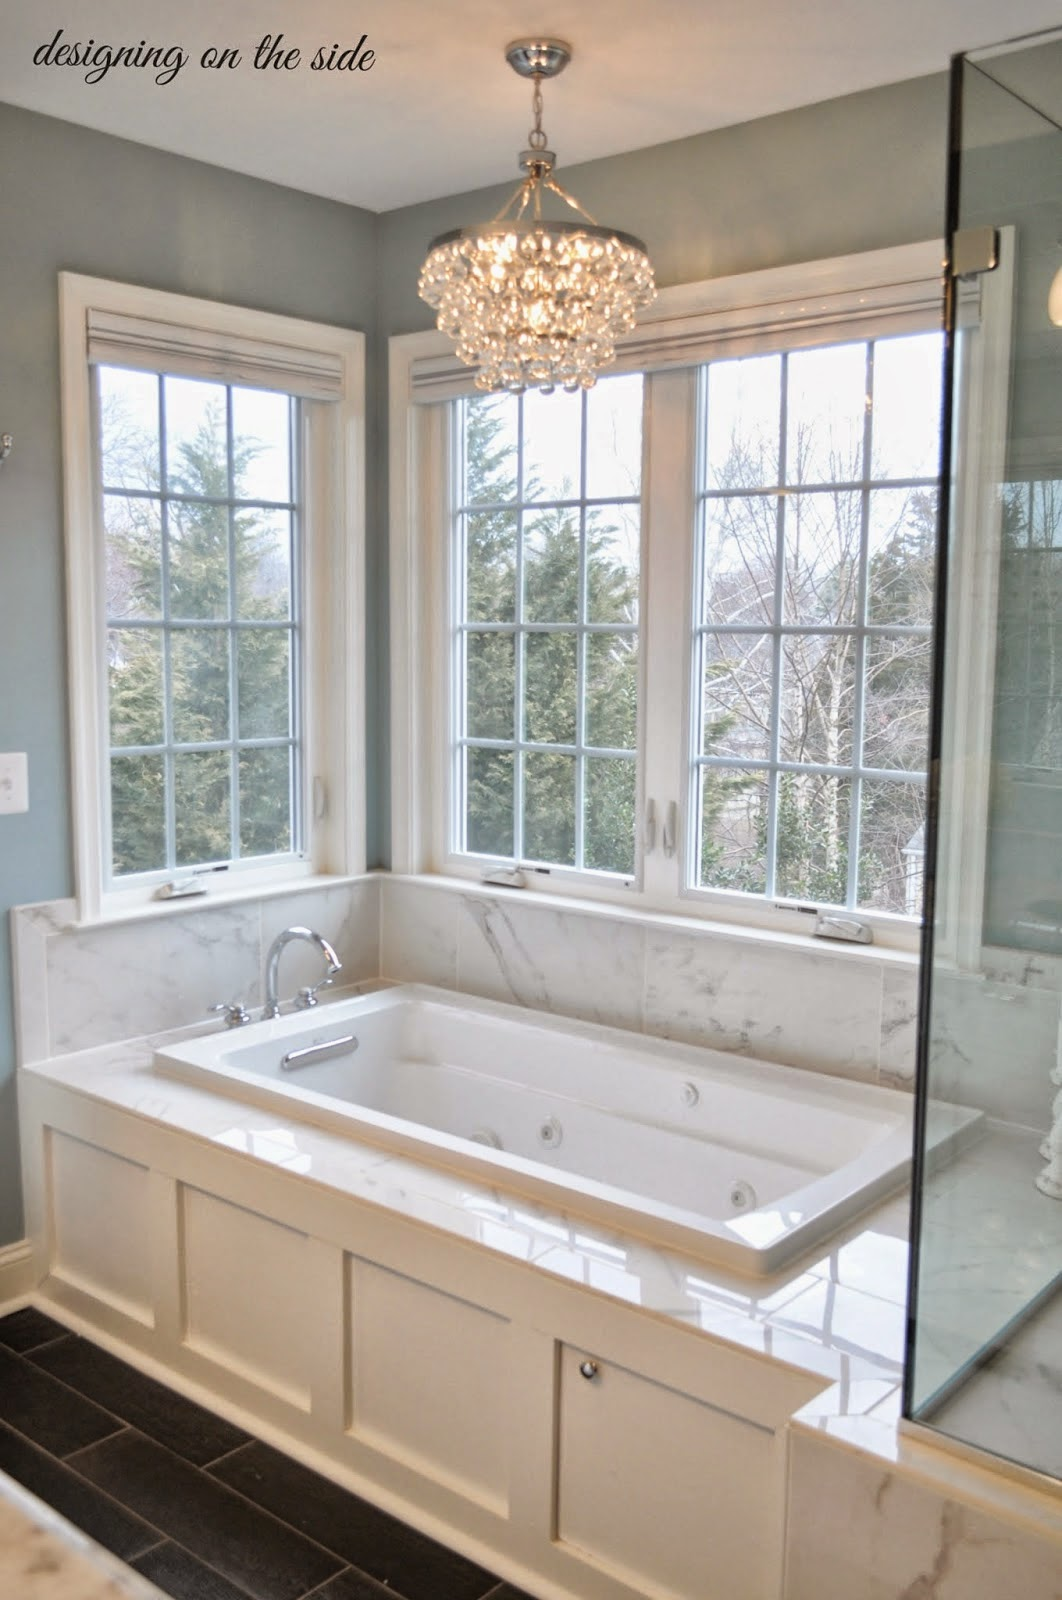 Master bathroom ideas entirely eventful day for Bathtub in bathroom